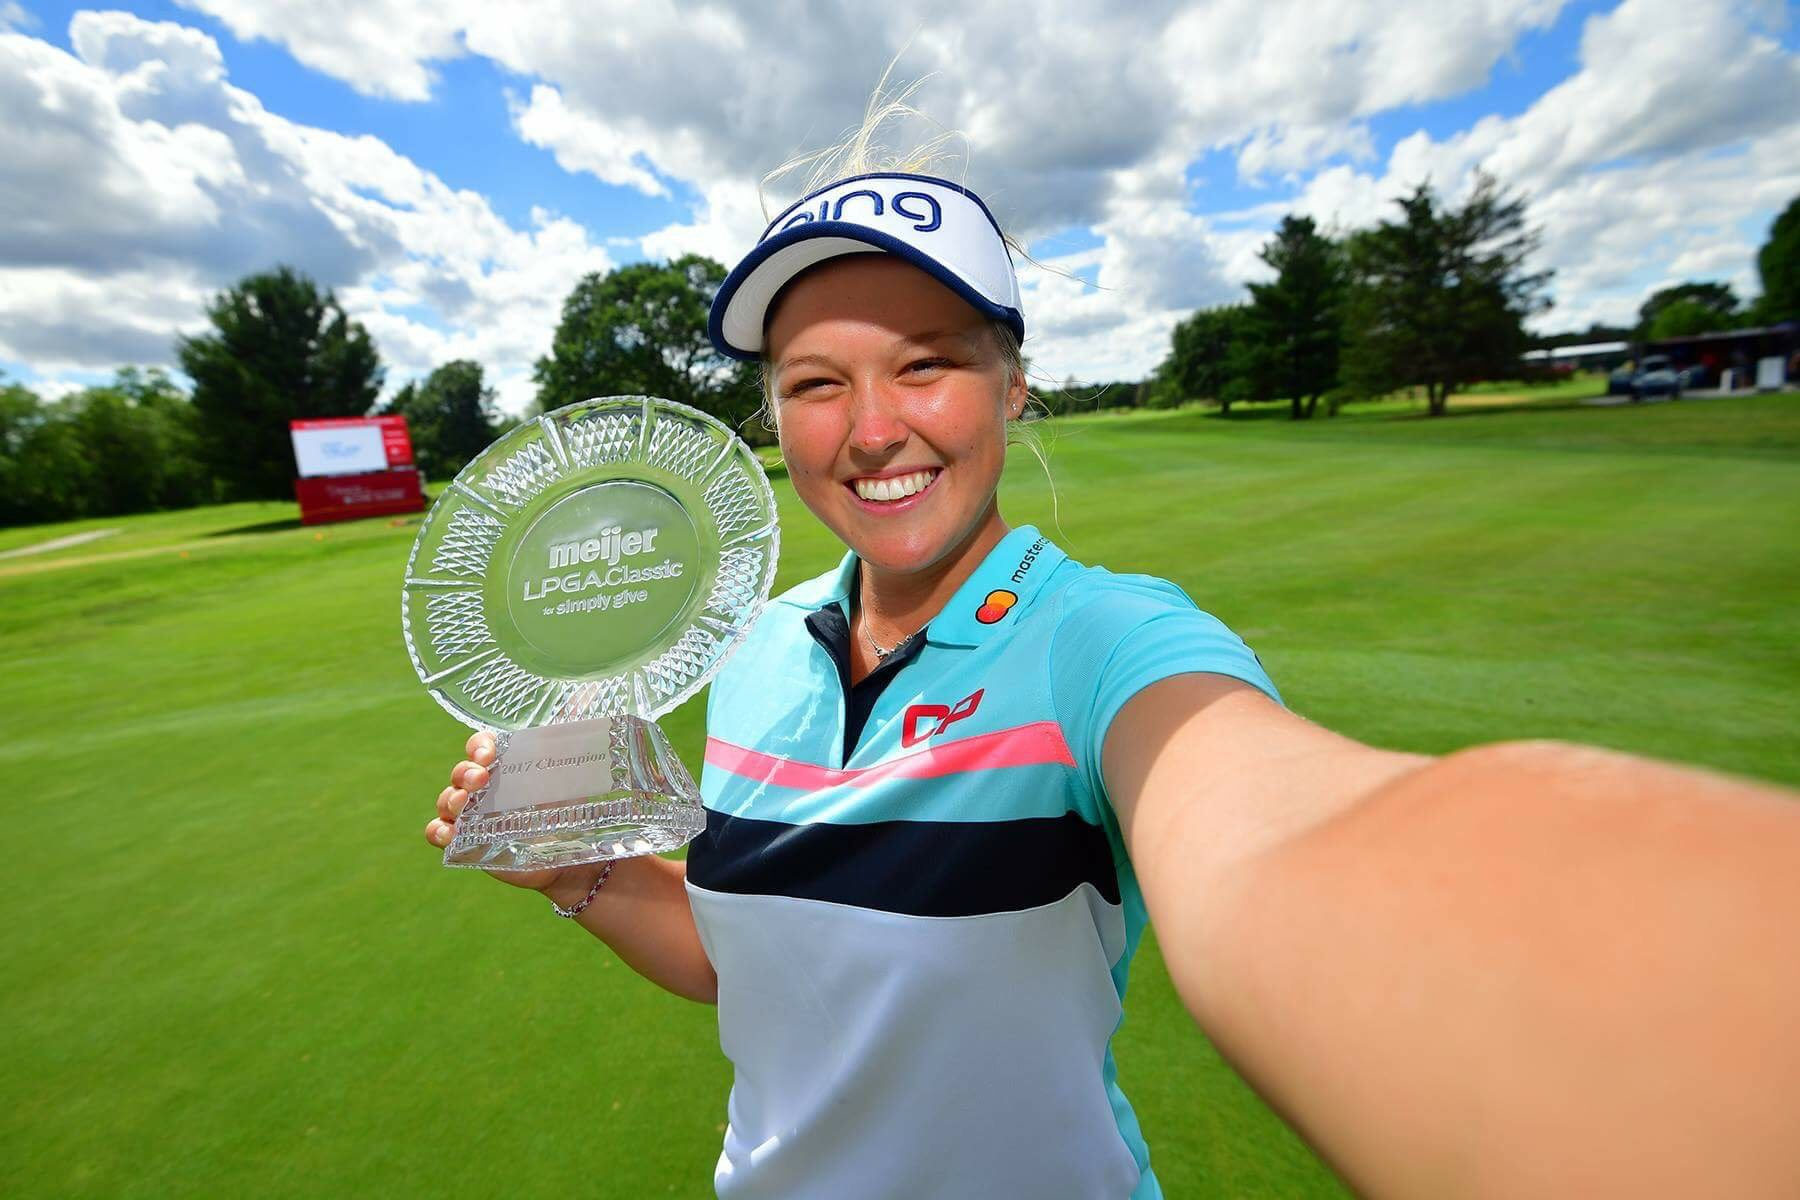 Thumbnail for Players Take to Social Media to Thank Meijer and the Meijer LPGA Classic for Simply Give